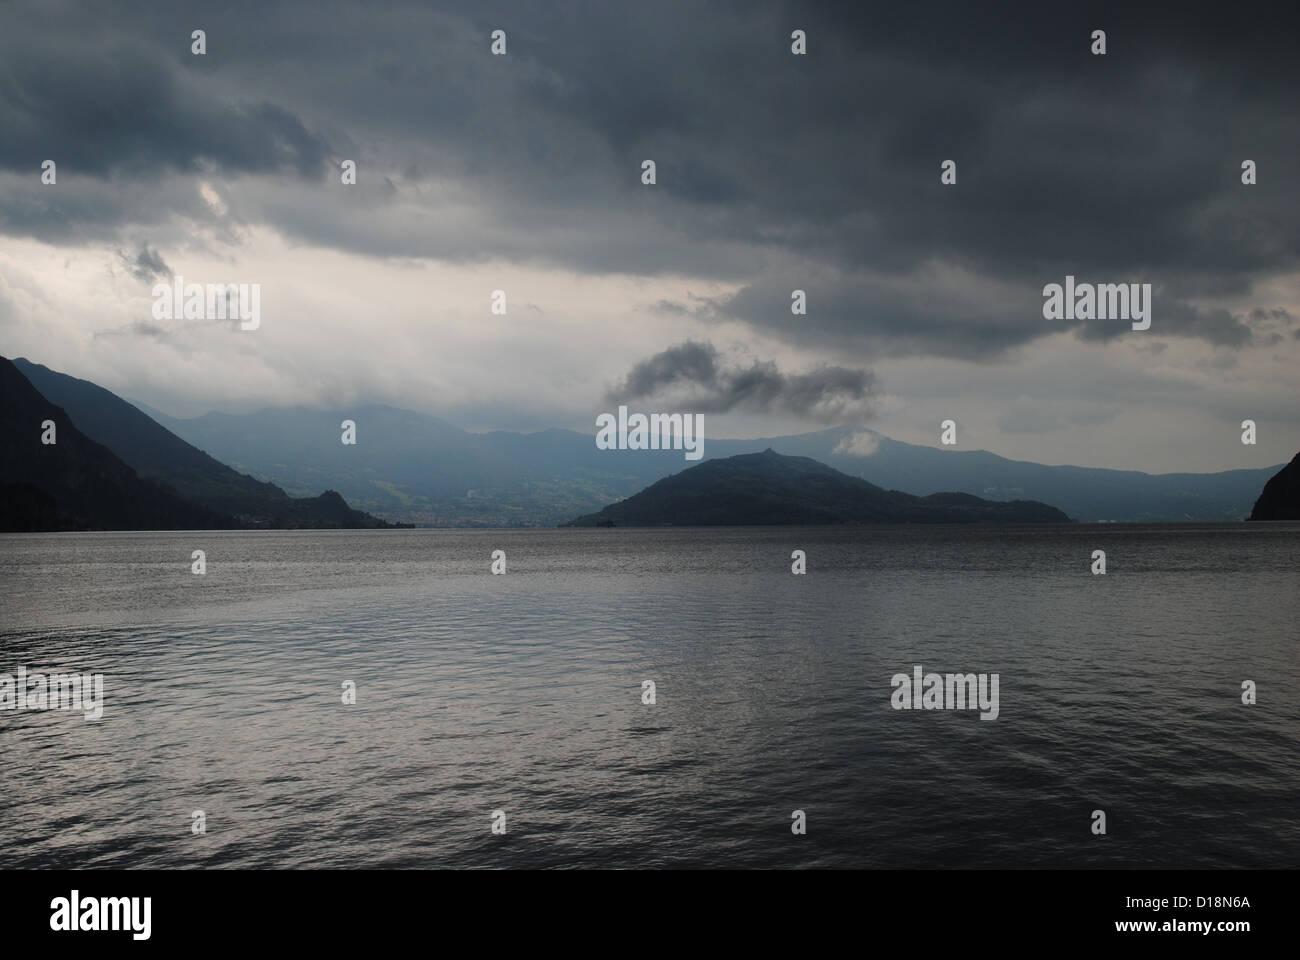 Monte isola view in a rainy day. - Stock Image